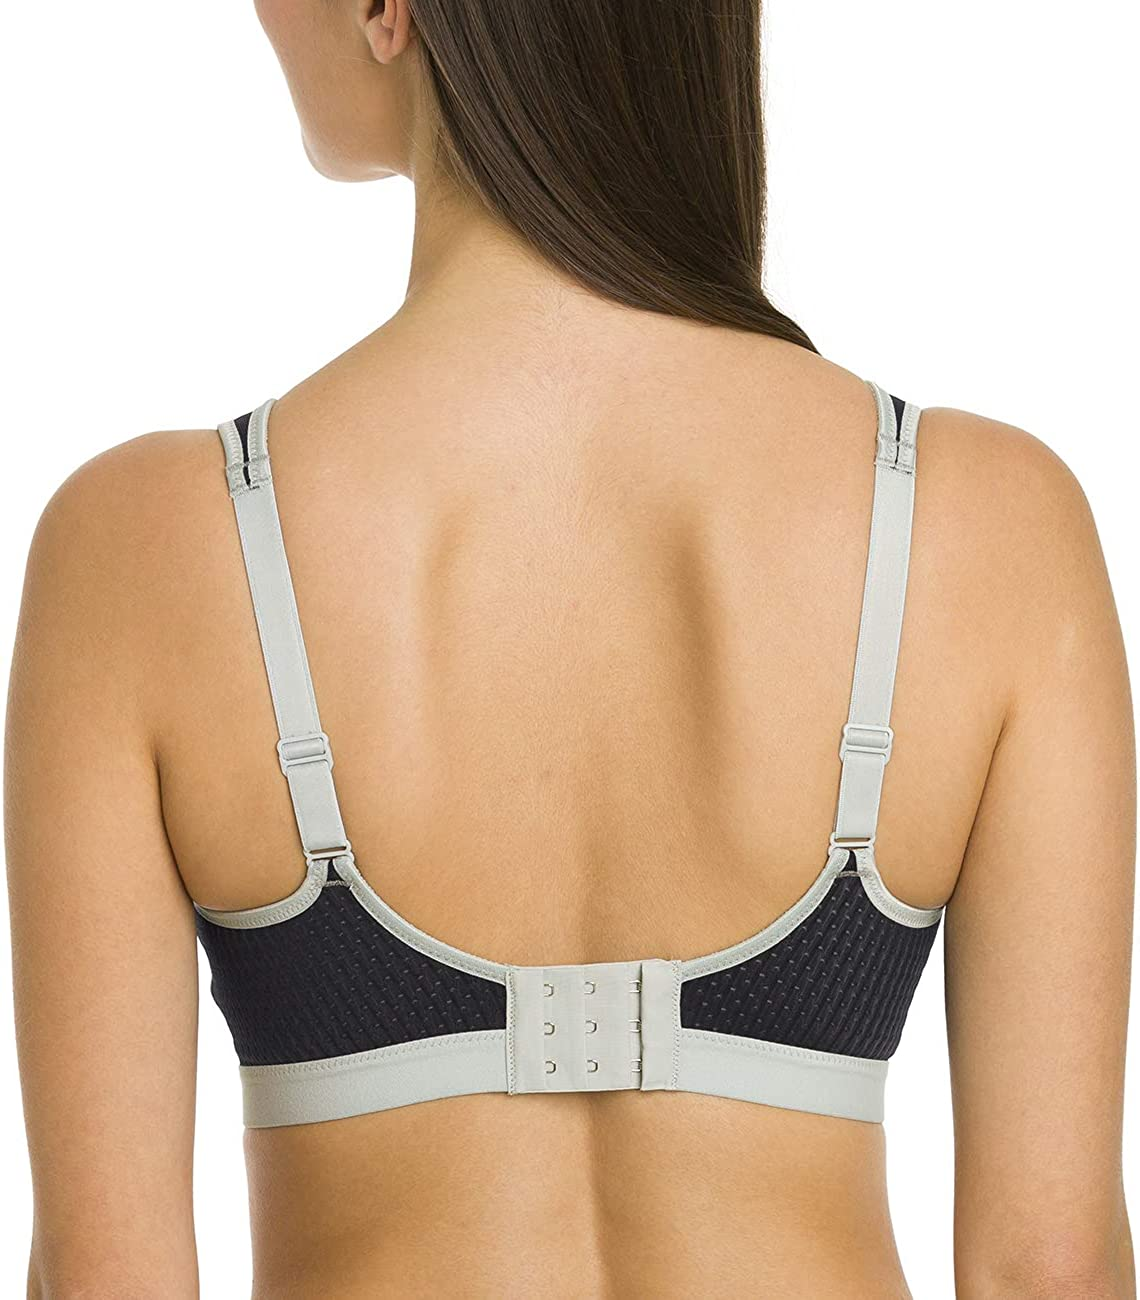 5547 Anita Impact Control Max Support Softcup Sports Bra